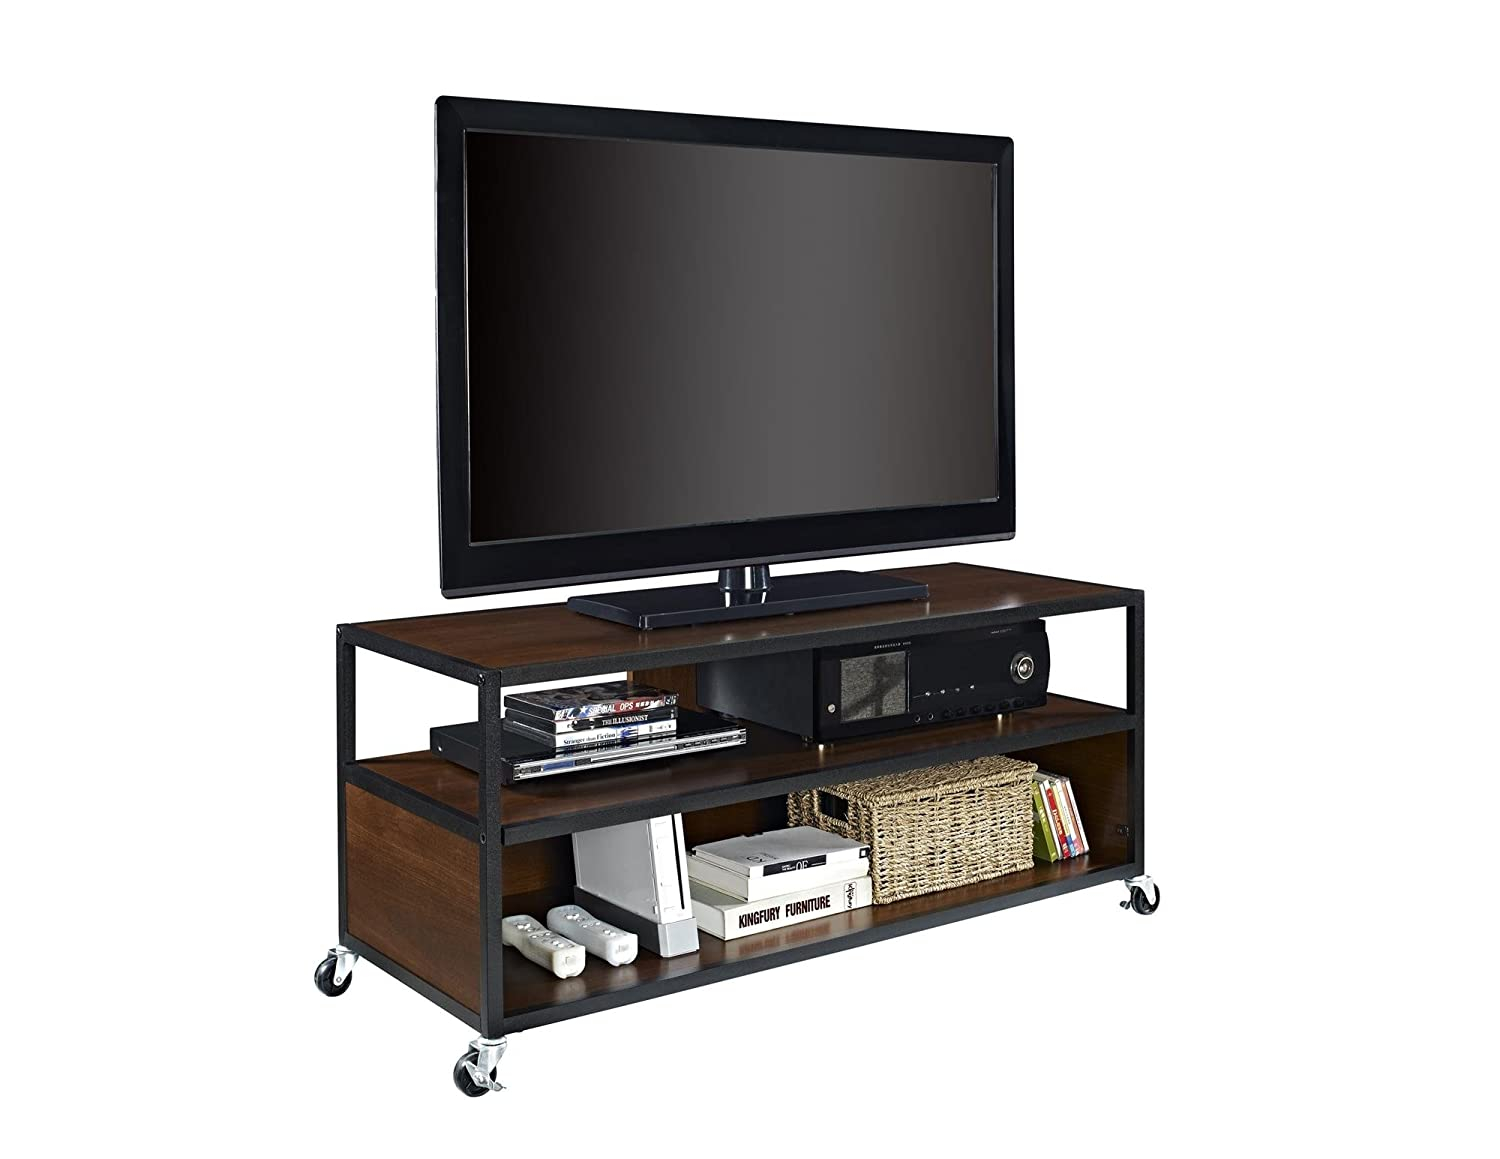 Amazon Com Altra Mason Ridge Mobile 46 Tv Stand With Metal Frame  # Bonjour Muebles